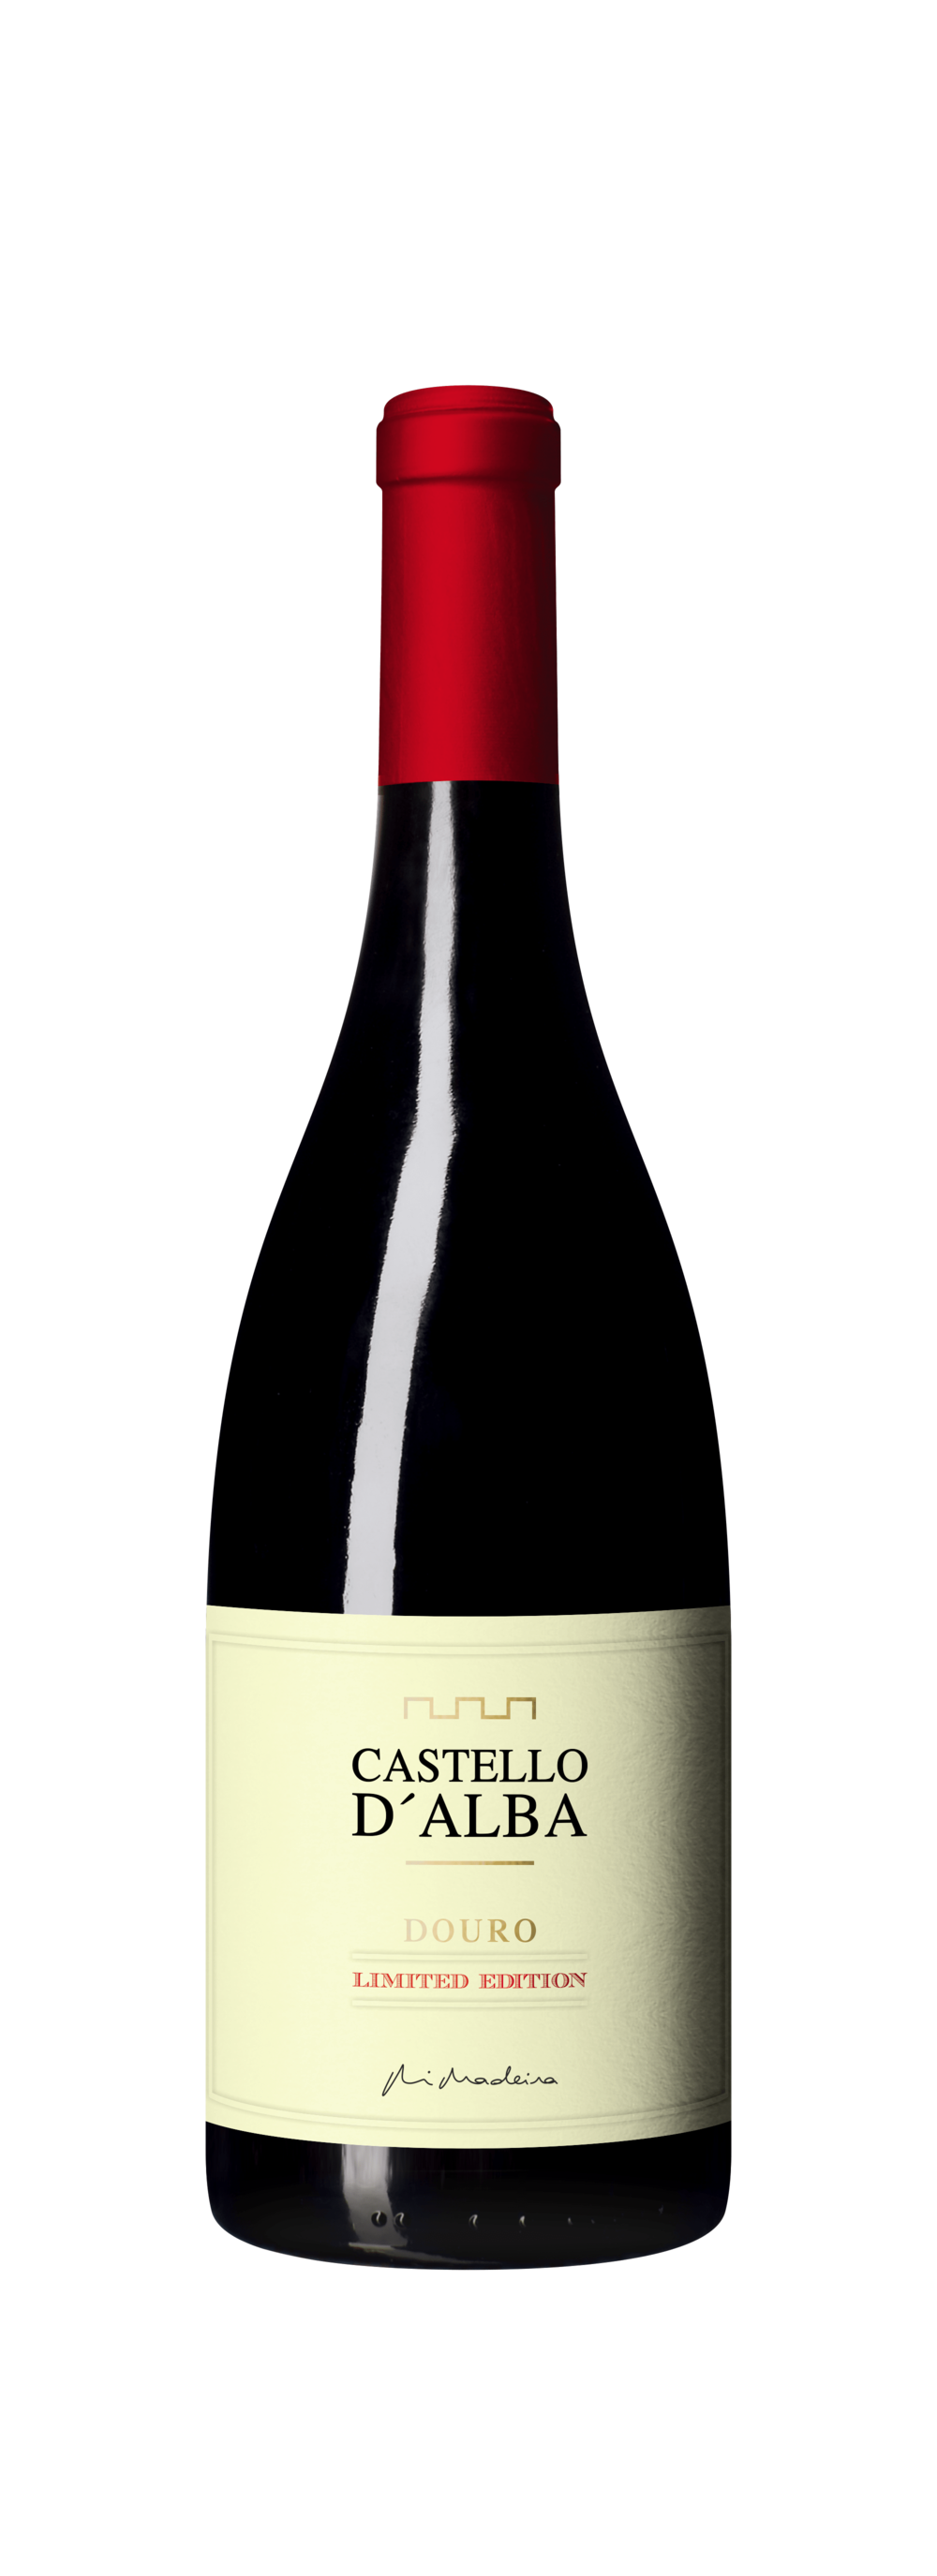 cda_douro_limited edition red_NV_750_ss-min.png